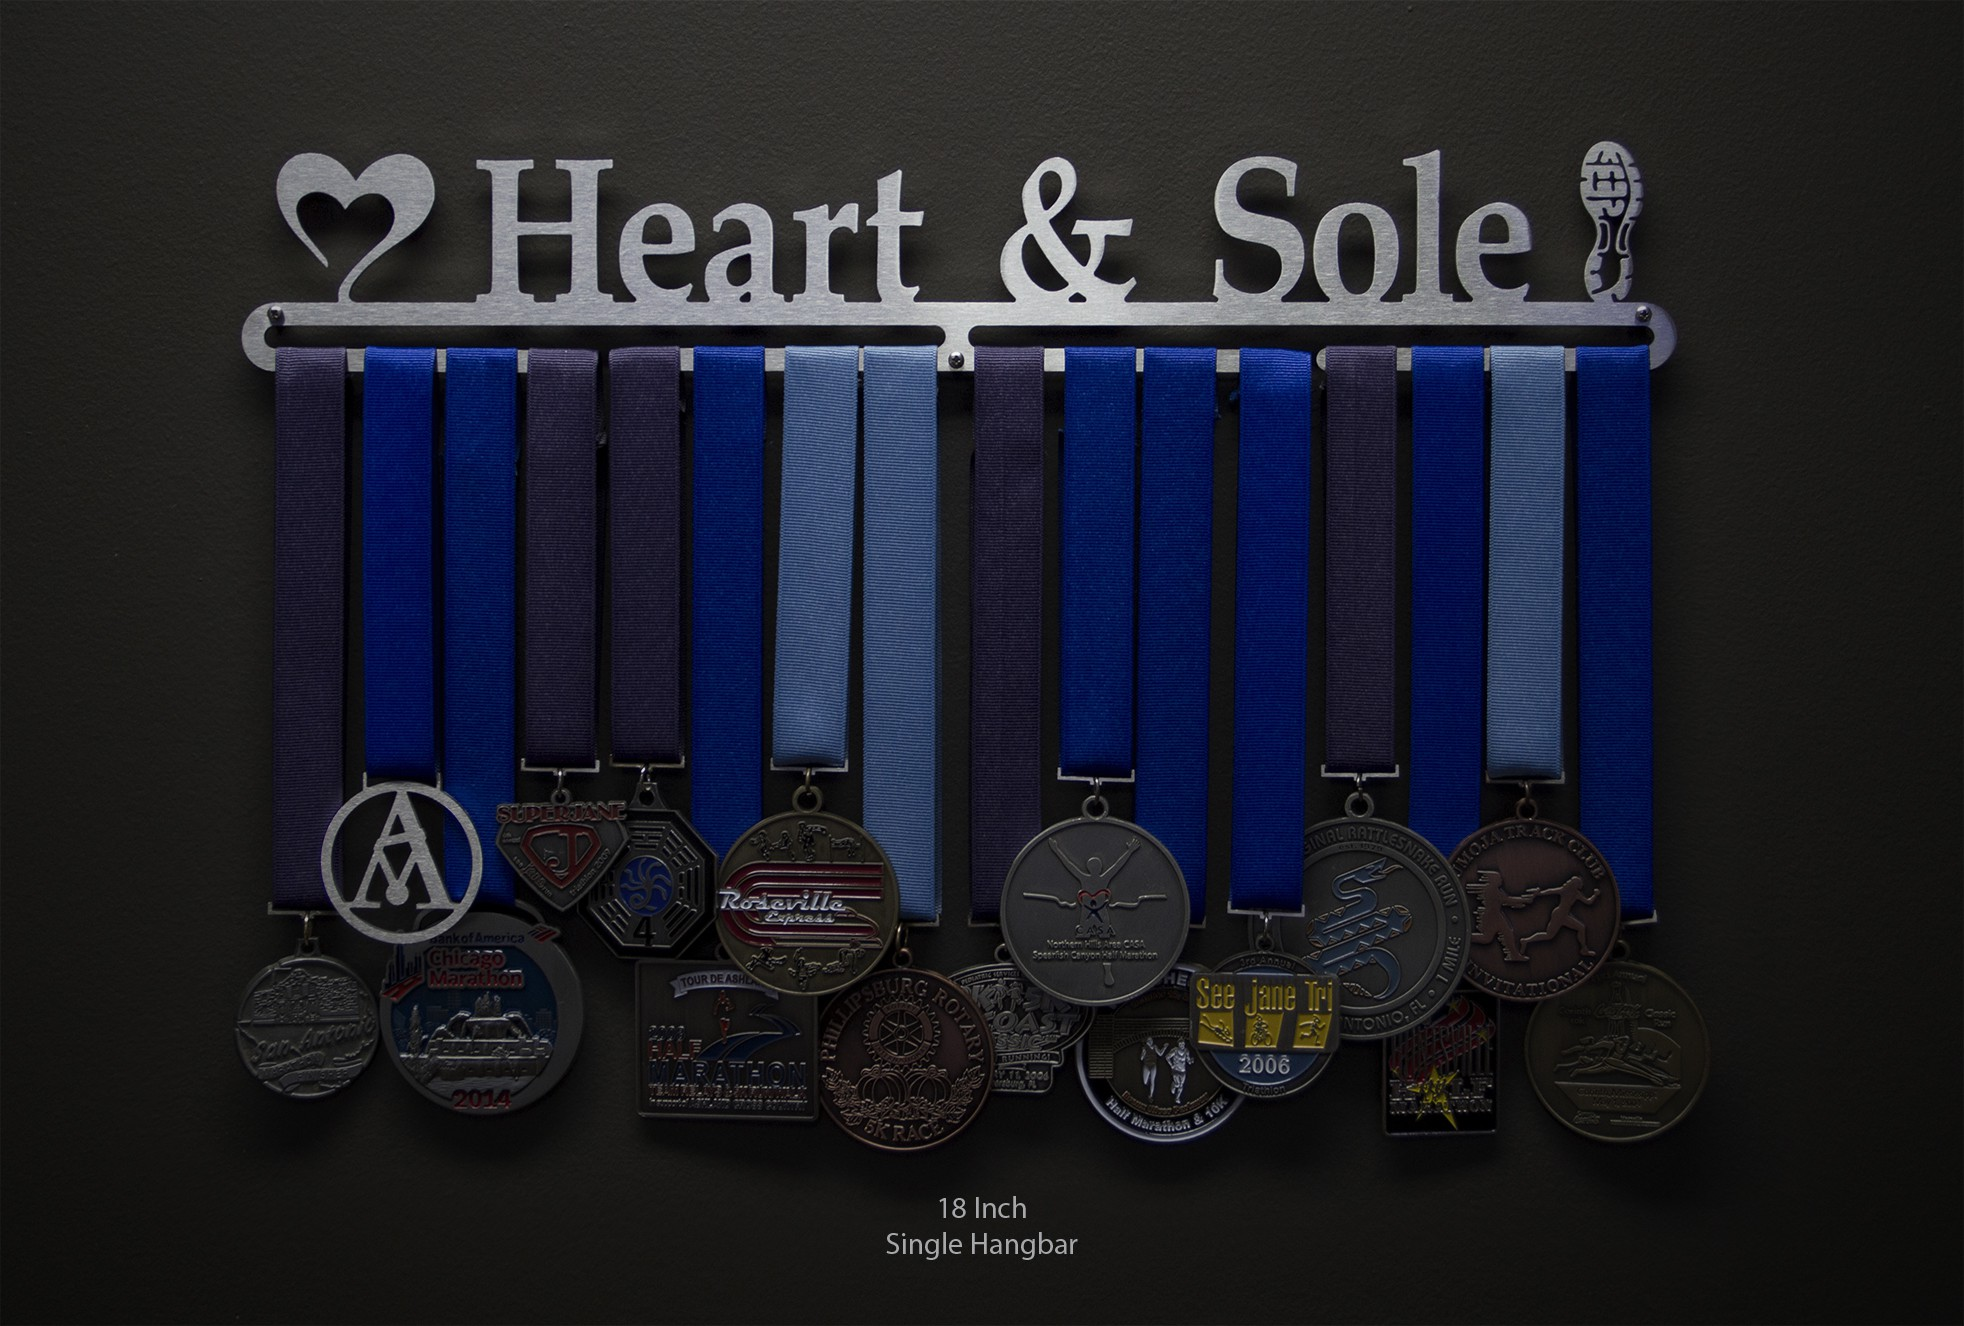 Heart And Sole  Sport  Running Medal Displays  The Original Stainless Steel Medal Display